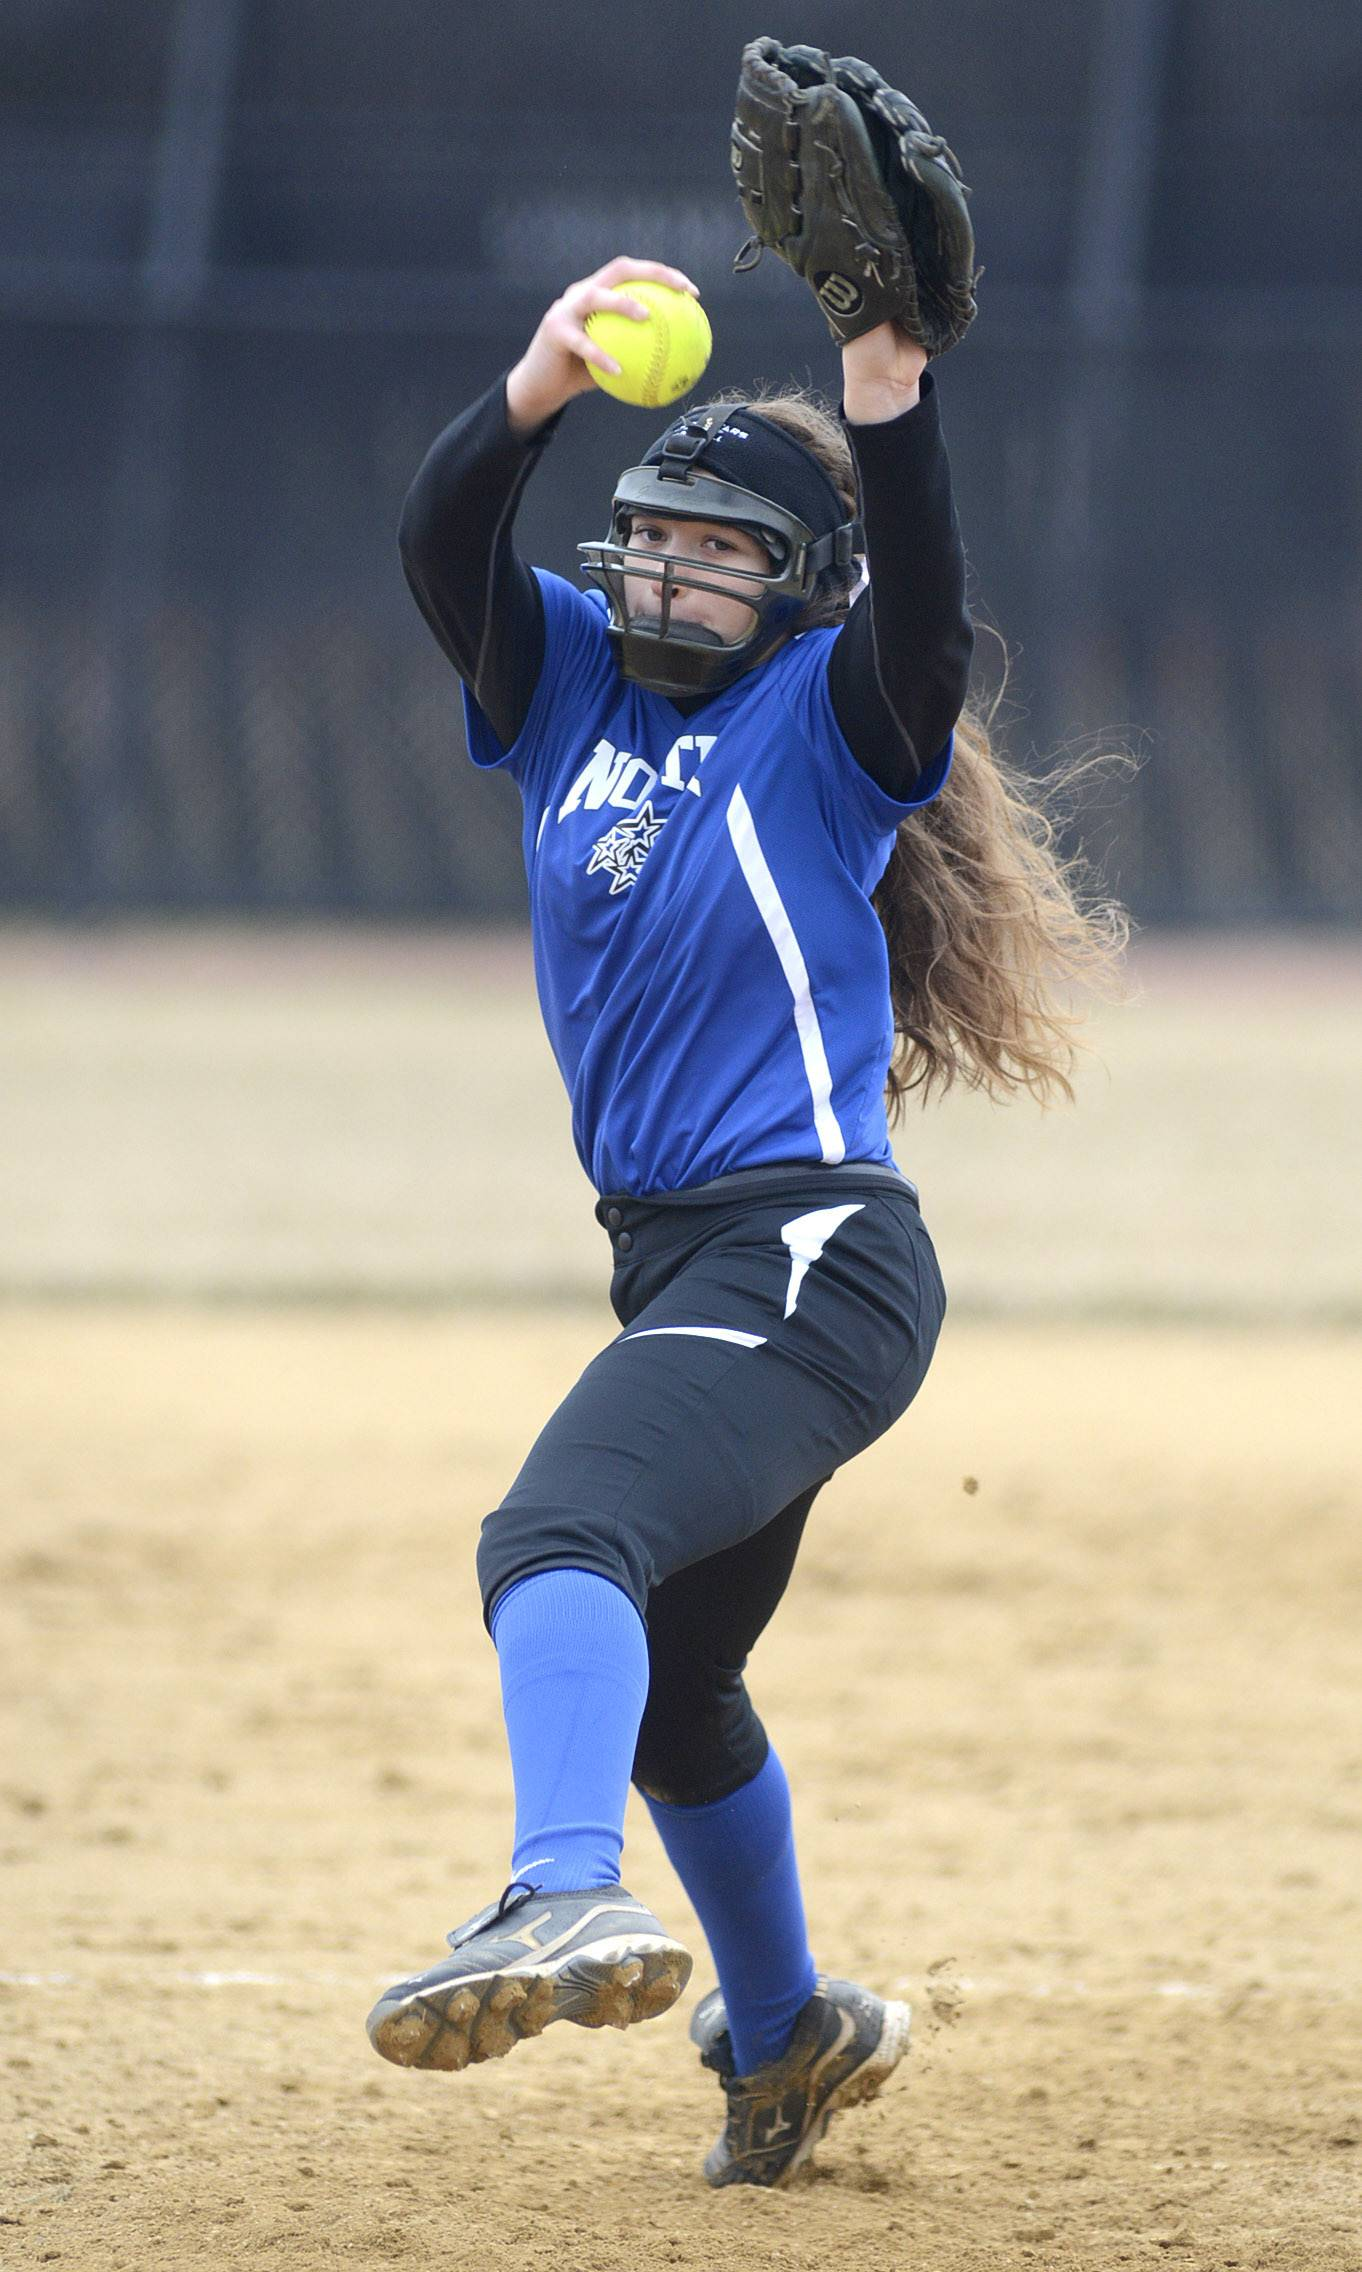 Laura Stoecker/lstoecker@dailyherald.comSt. Charles North's Sabrina Rabin pitches in the game vs. Schaumburg on Wednesday, April 2.